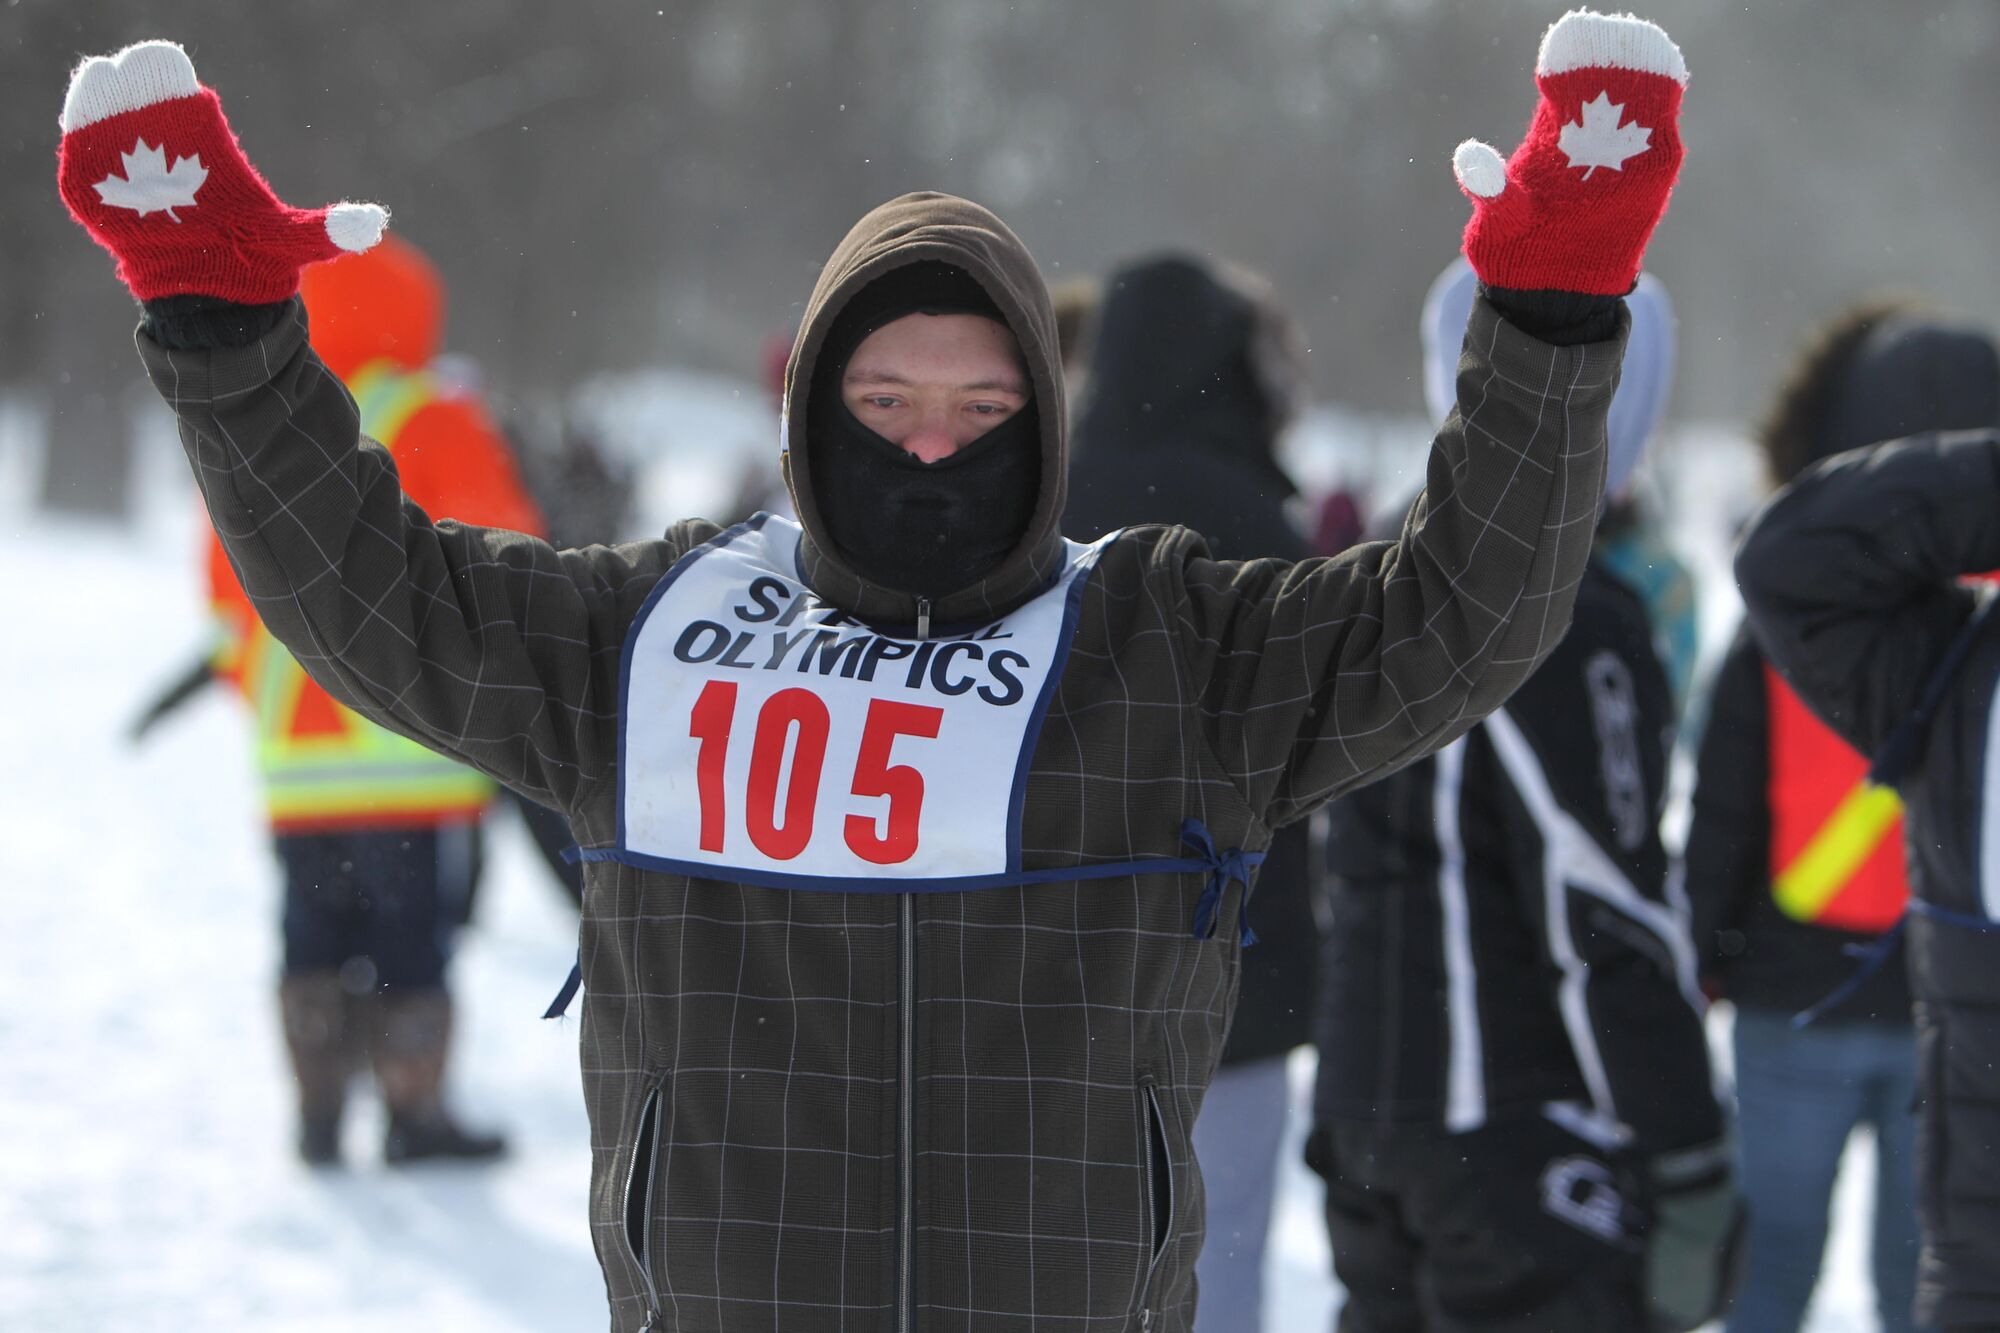 David Cheyne makes his way over the finish line while competing in the 100-metre snowshoeing event at the 2014 Special Olympics Winter Games held at St. John's-Ravesncourt School in February.